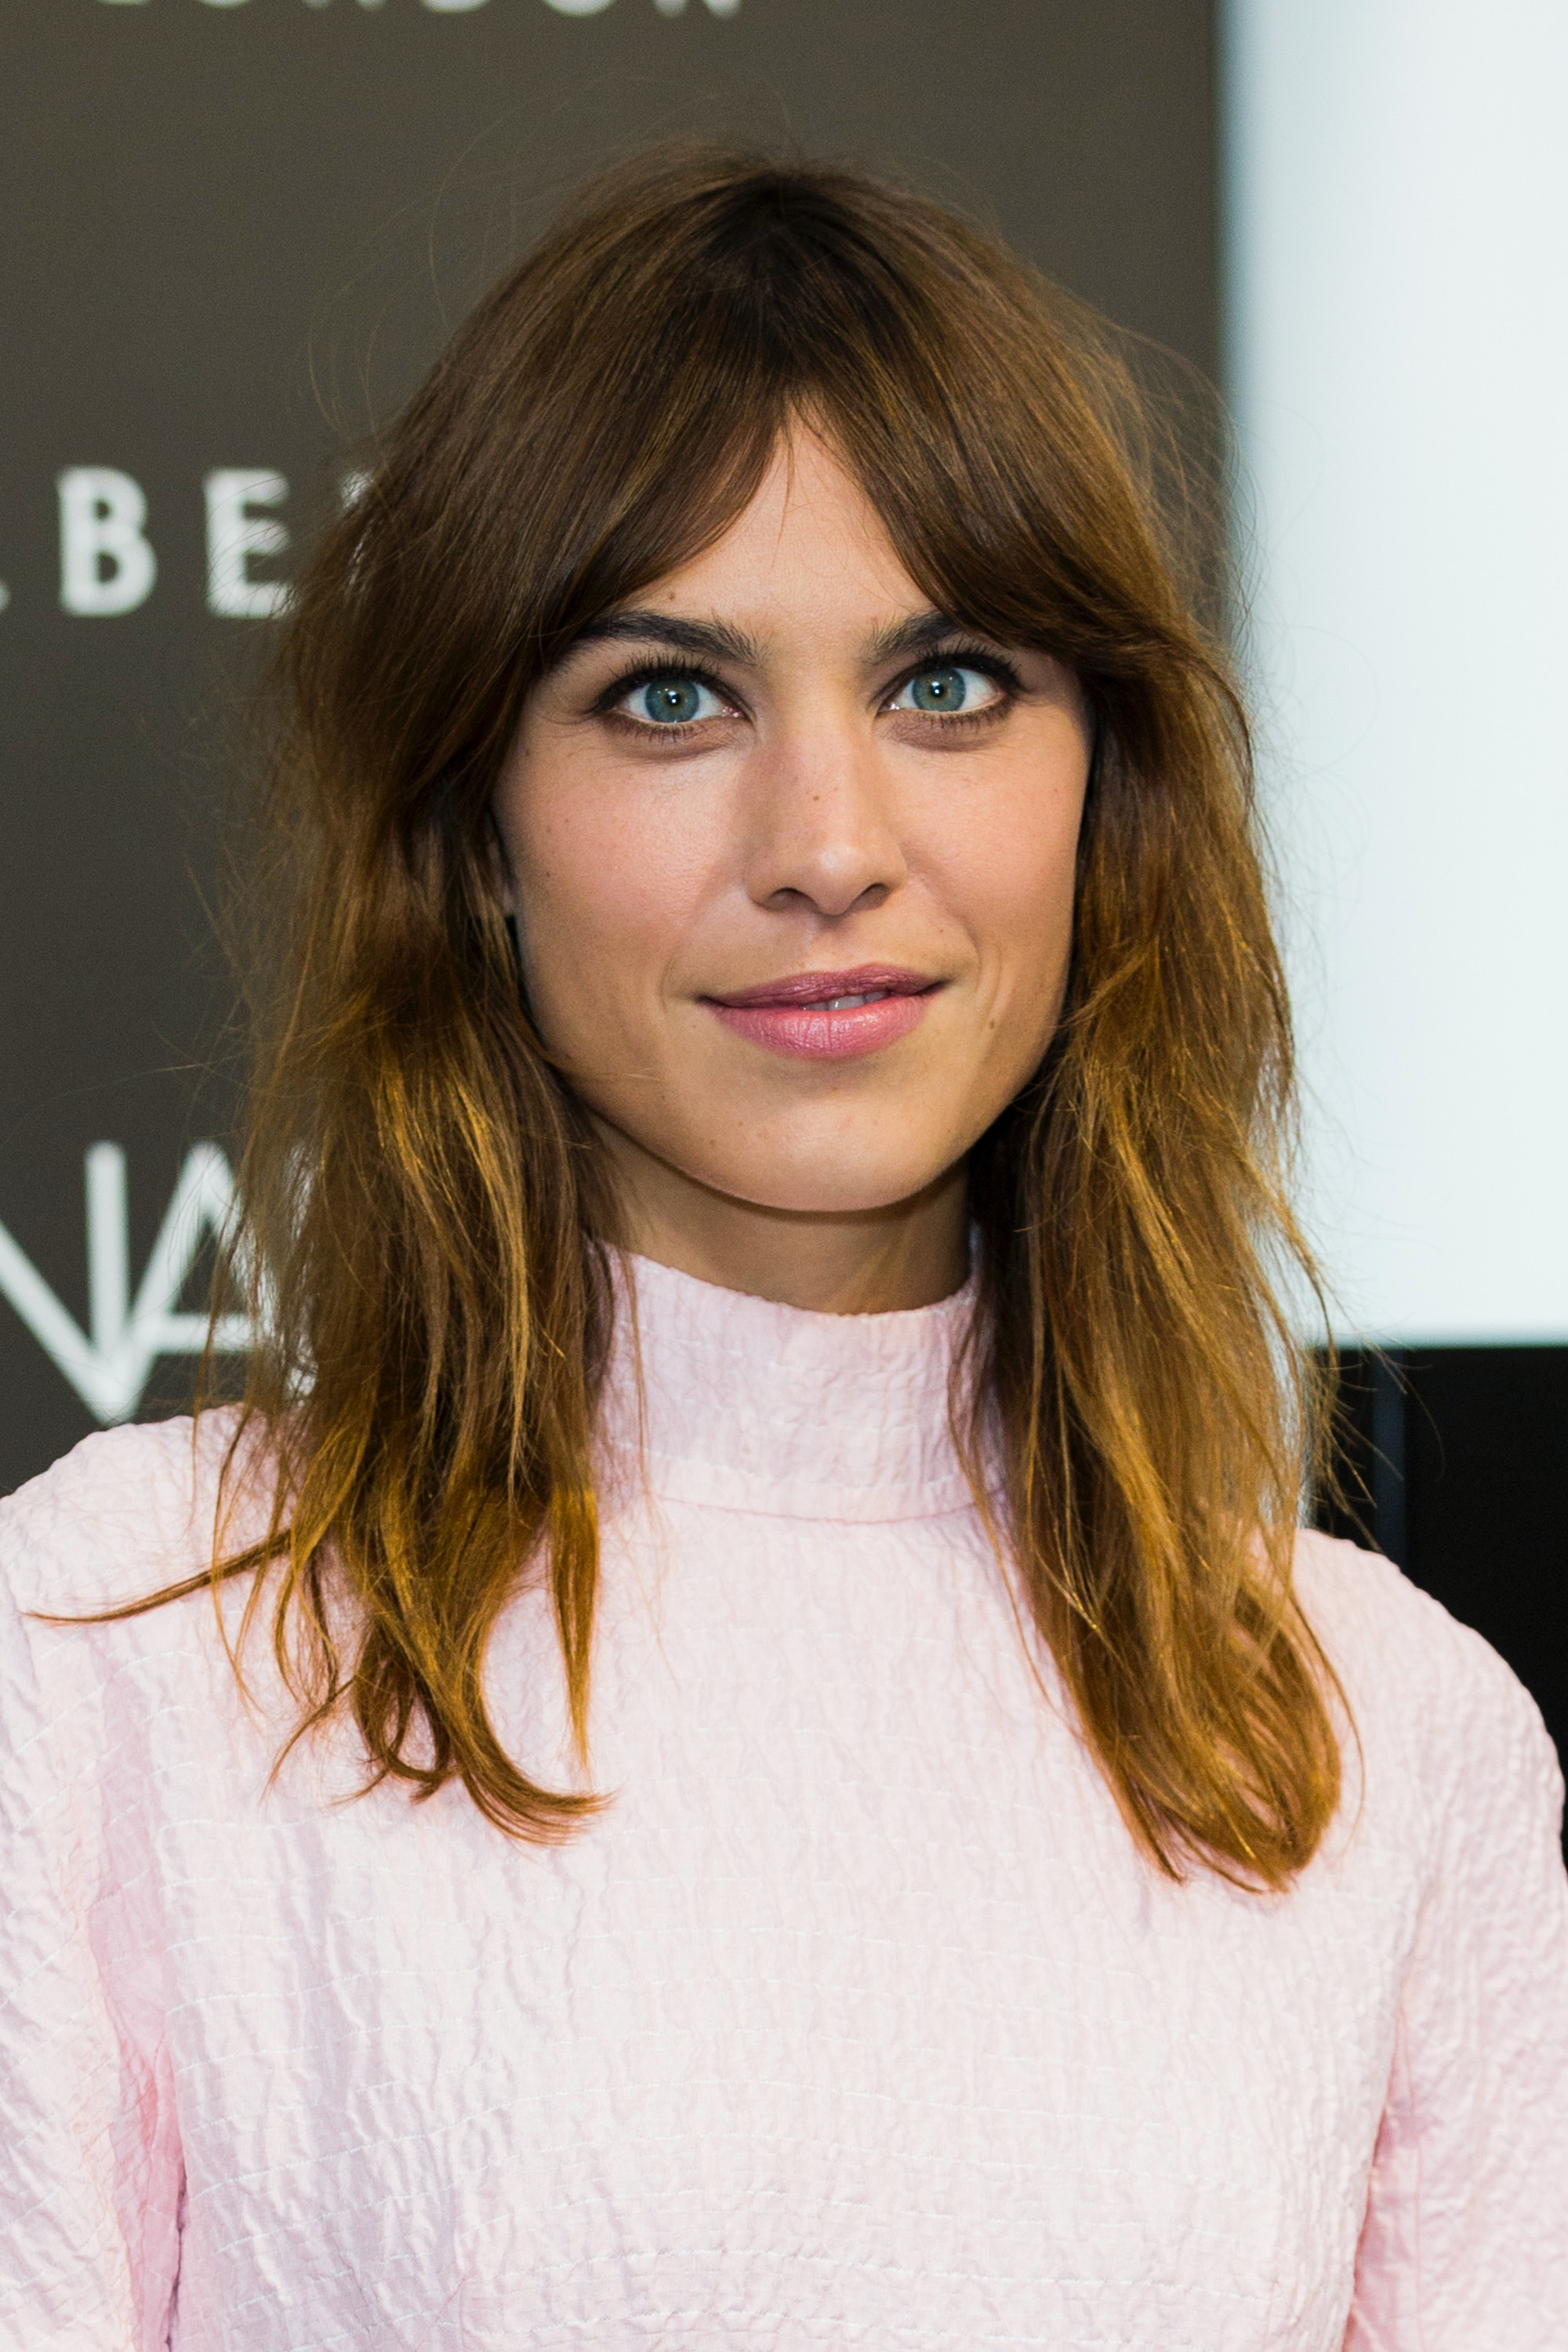 Alexa Chung's Advice on How to Get a Job at Vogue